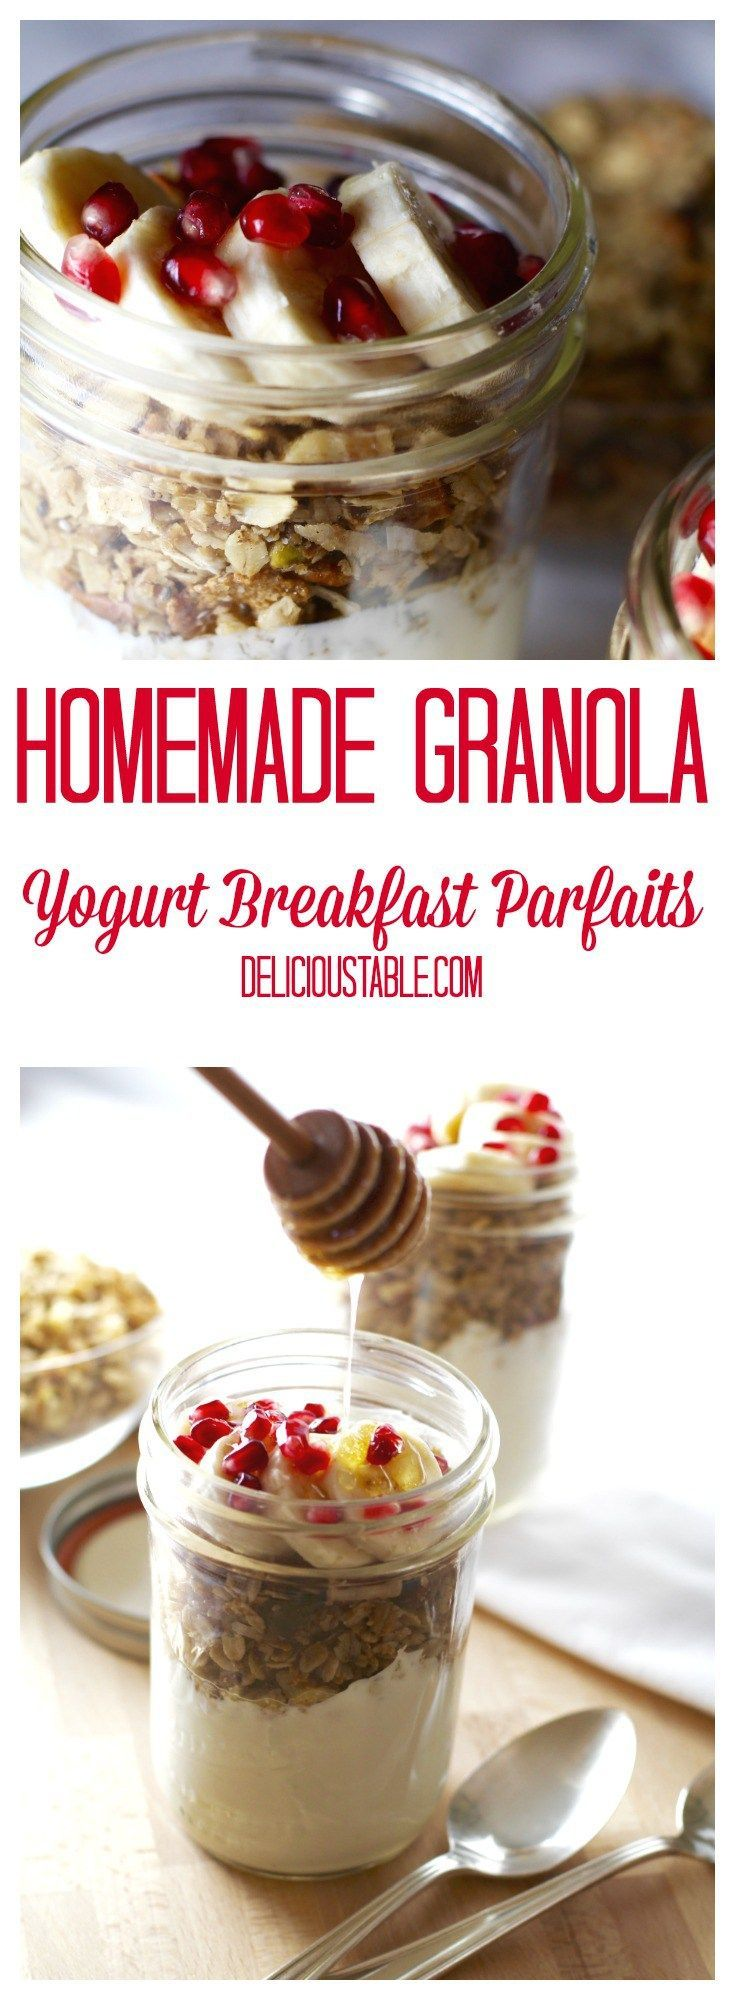 Easy Homemade Granola keeps well in the fridge. Parfaits in mason jars, are a great make ahead breakfast with any yogurt, fruit, and a drizzle of honey!